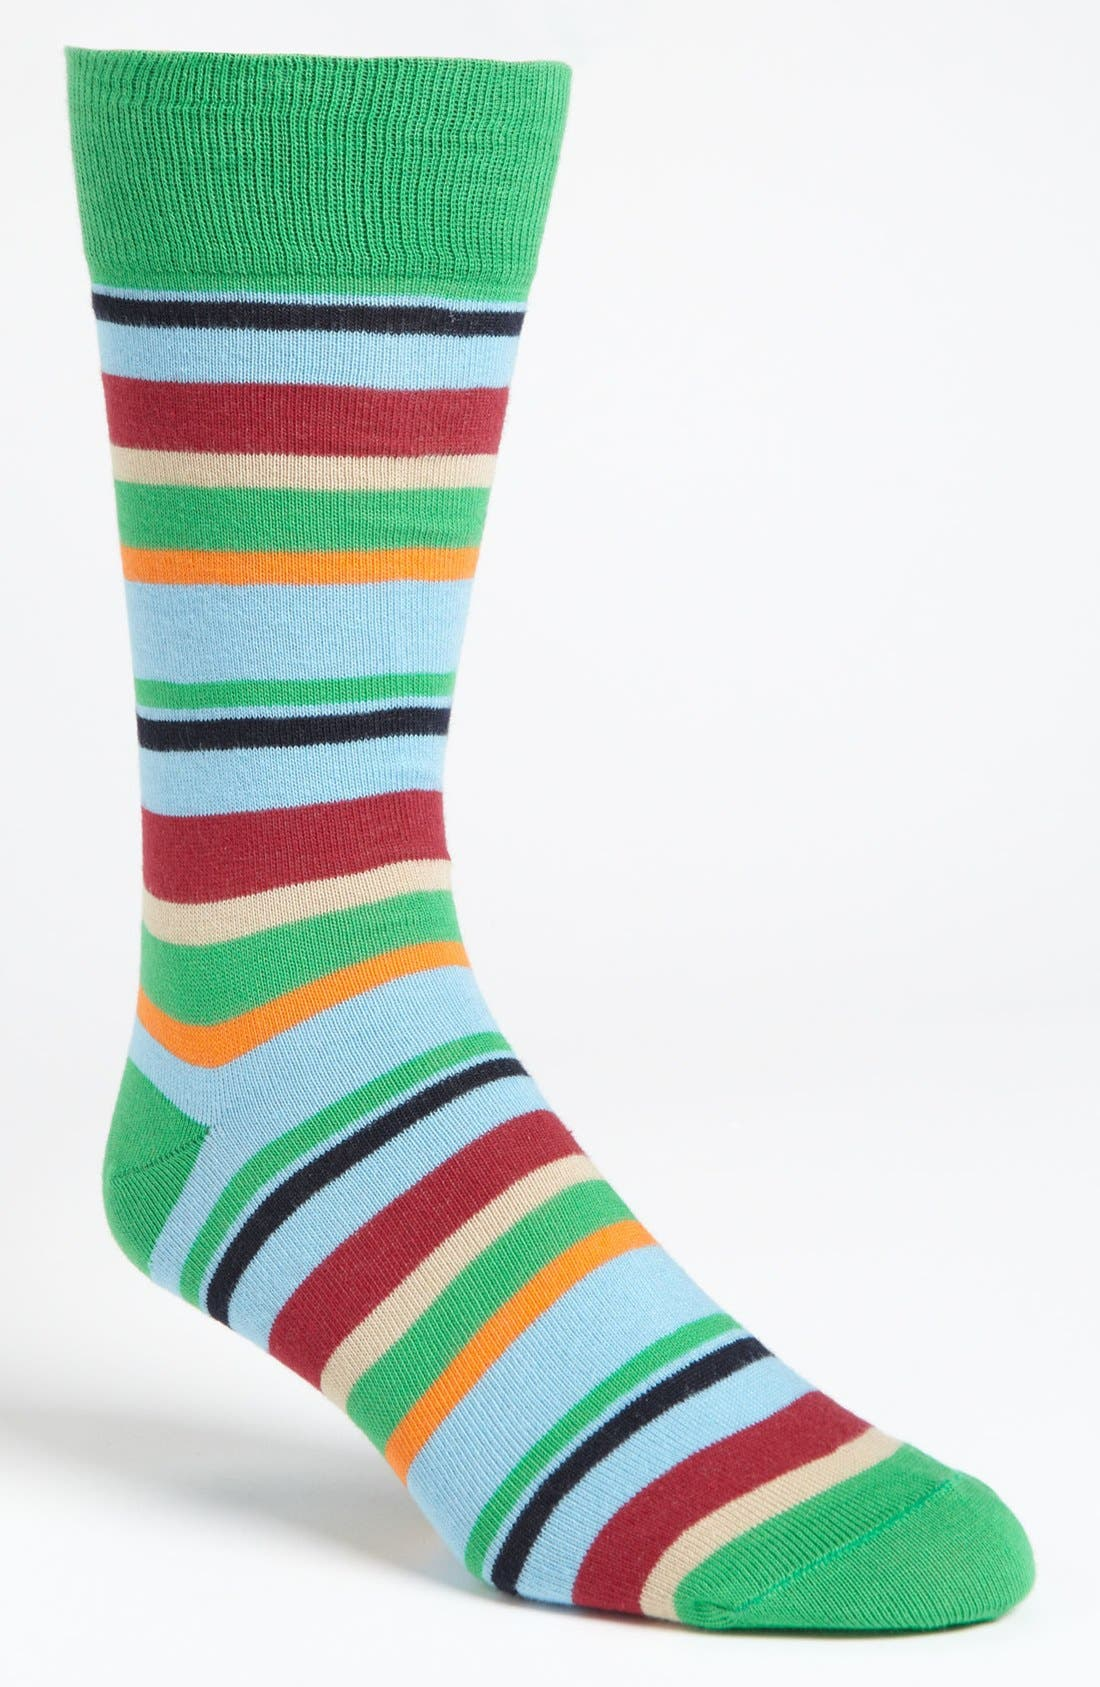 Alternate Image 1 Selected - Lorenzo Uomo Multistripe Socks